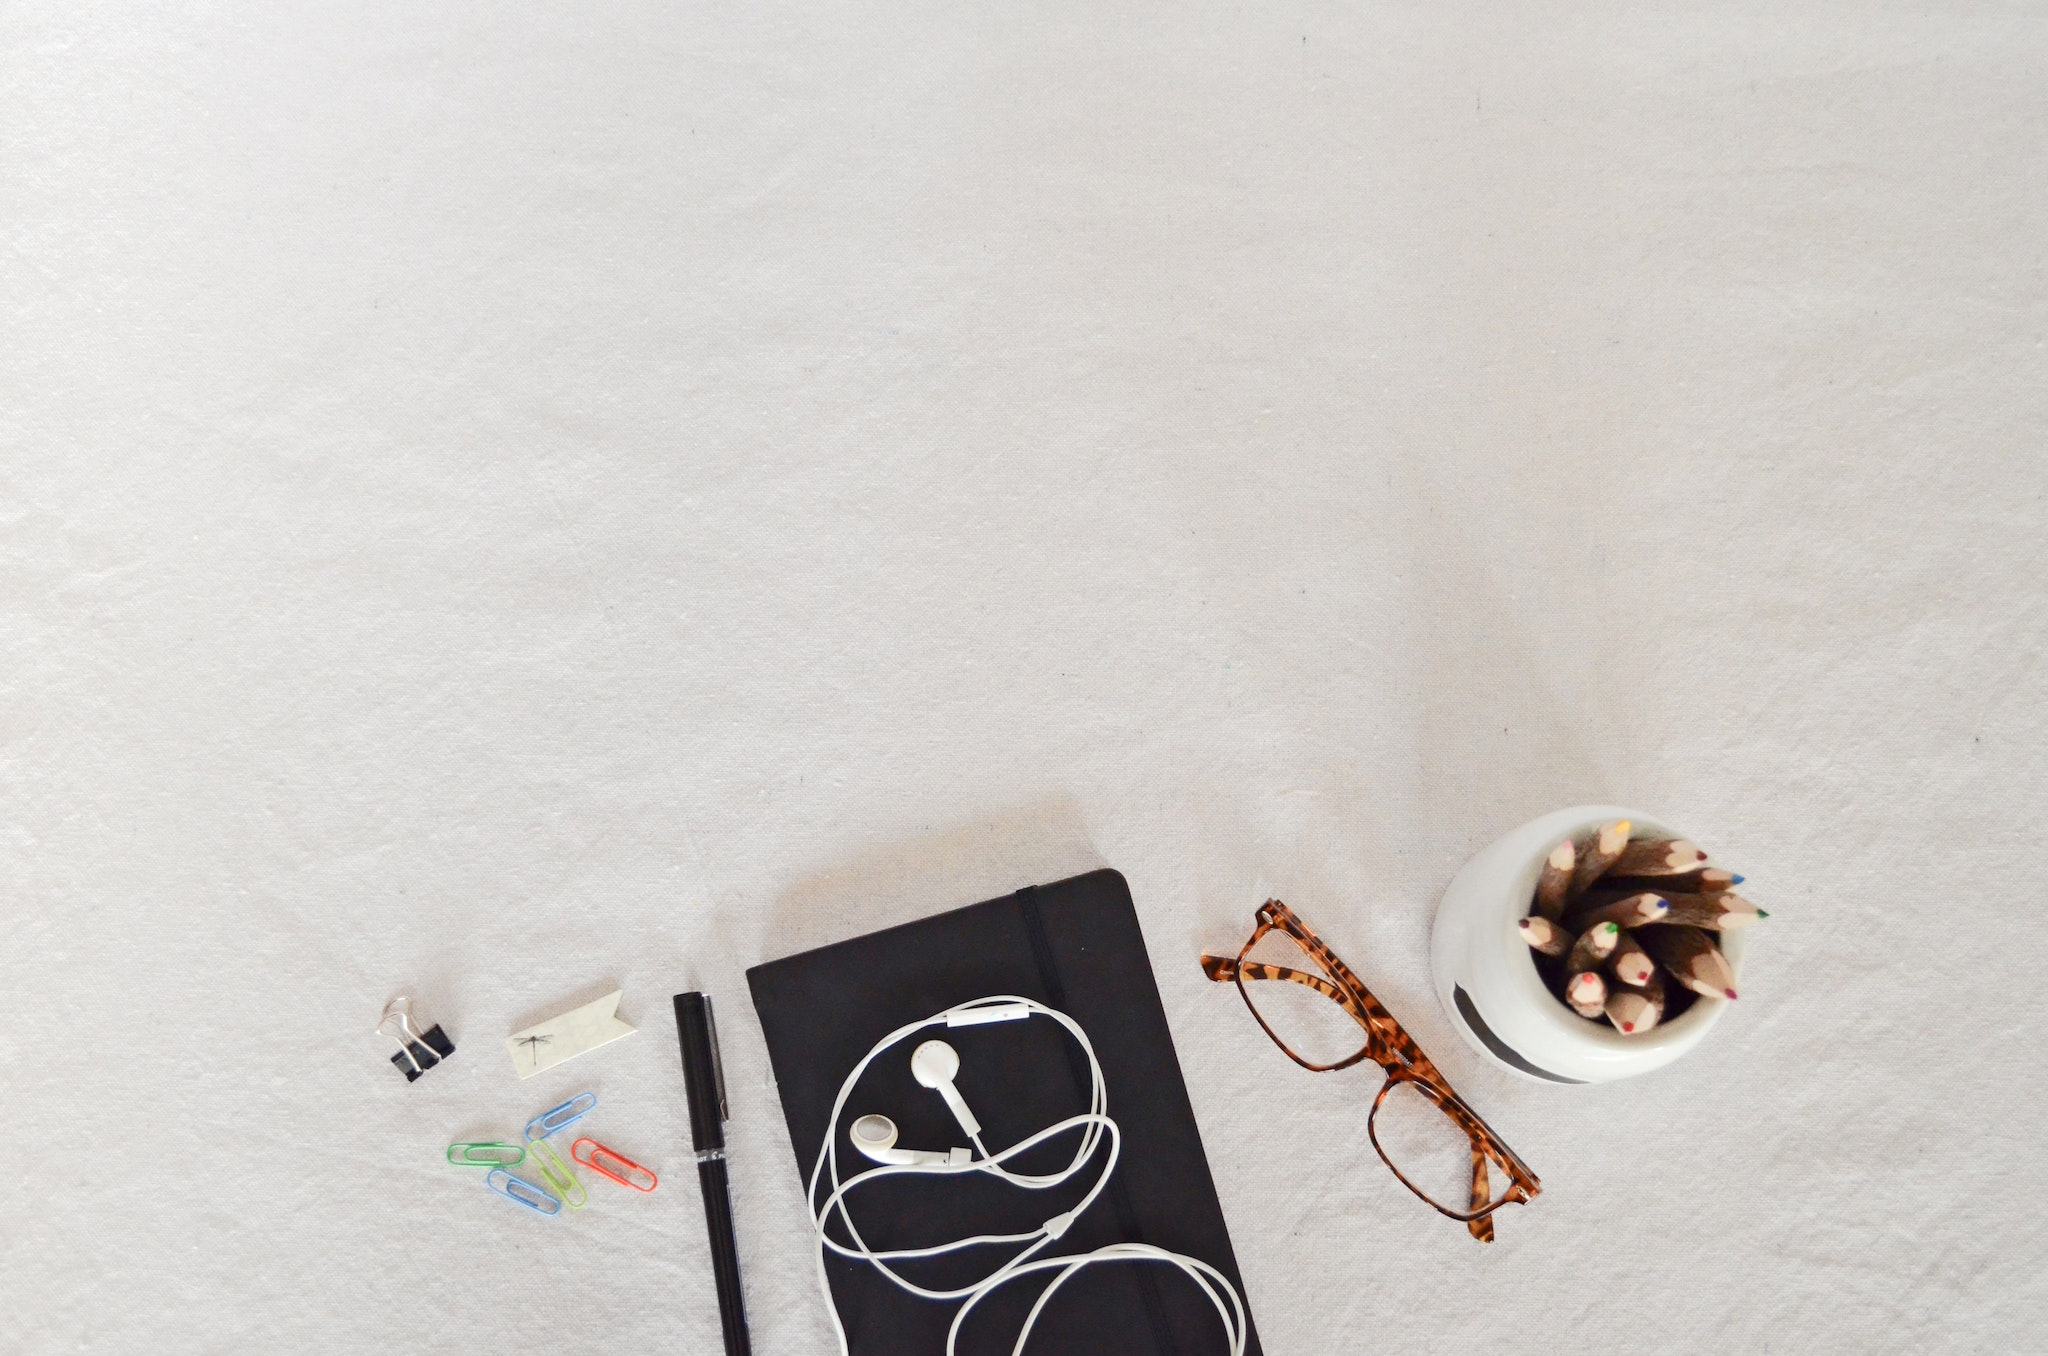 Schools items are laid out on a white surface, including: paperclips, a pen, a notebook with a pair of headphones on top, reading glasses and a cup of colored pencils.